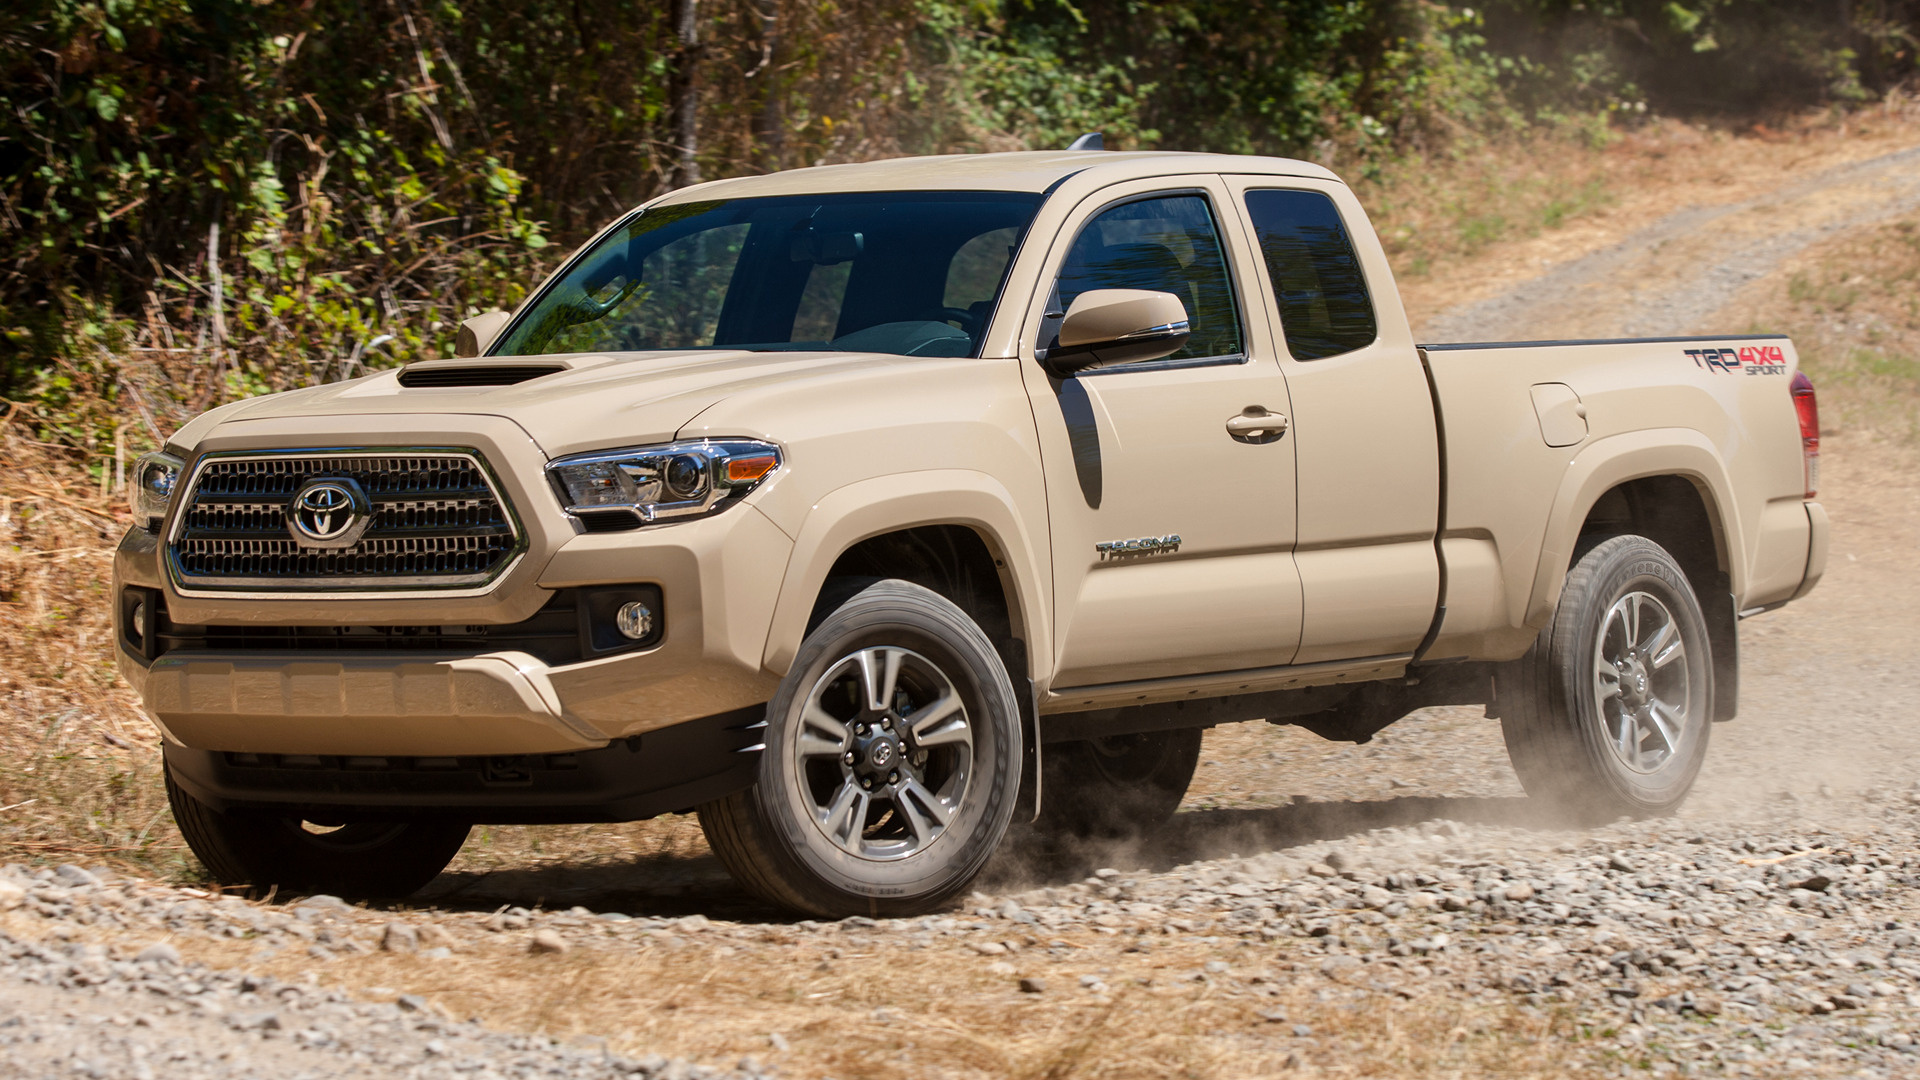 Toyota tacoma trd sport access cab 2016 wallpapers and hd images hd 169 voltagebd Choice Image